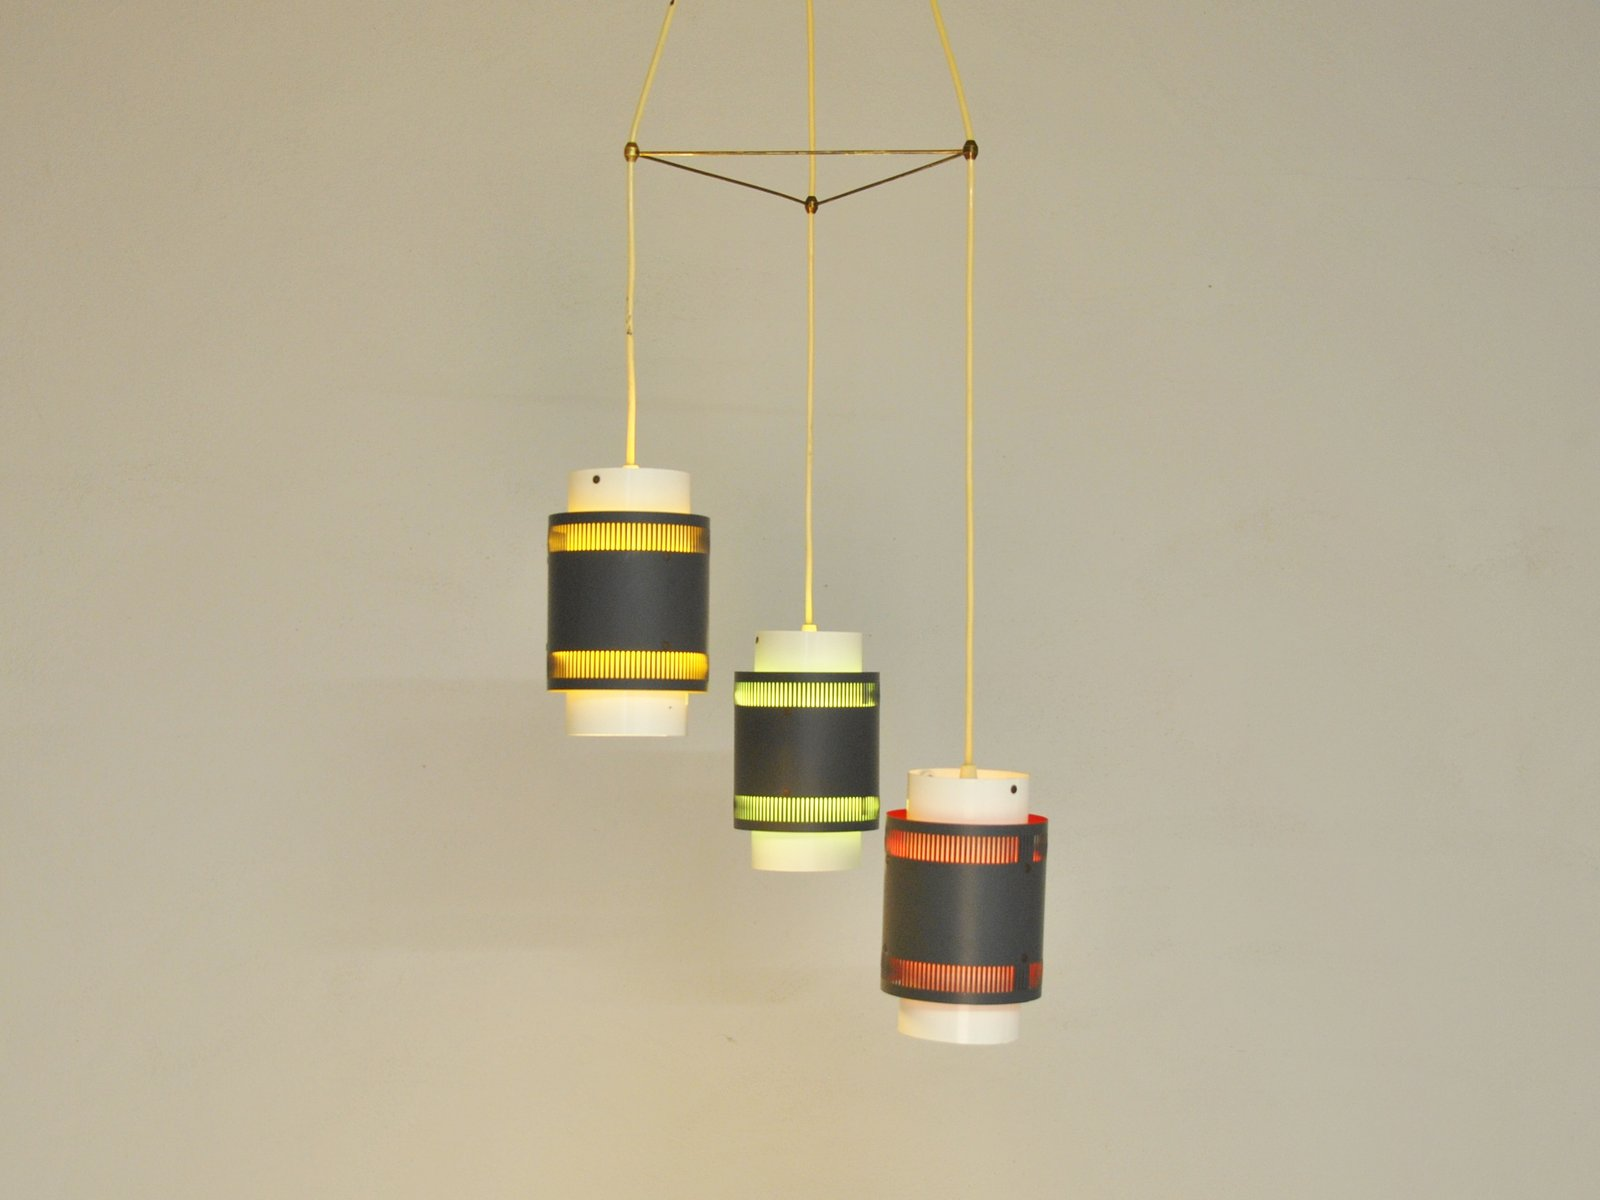 Vintage Danish 3-Pendant Hanging Lamp for sale at Pamono for Cylinder Hanging Lamp  61obs